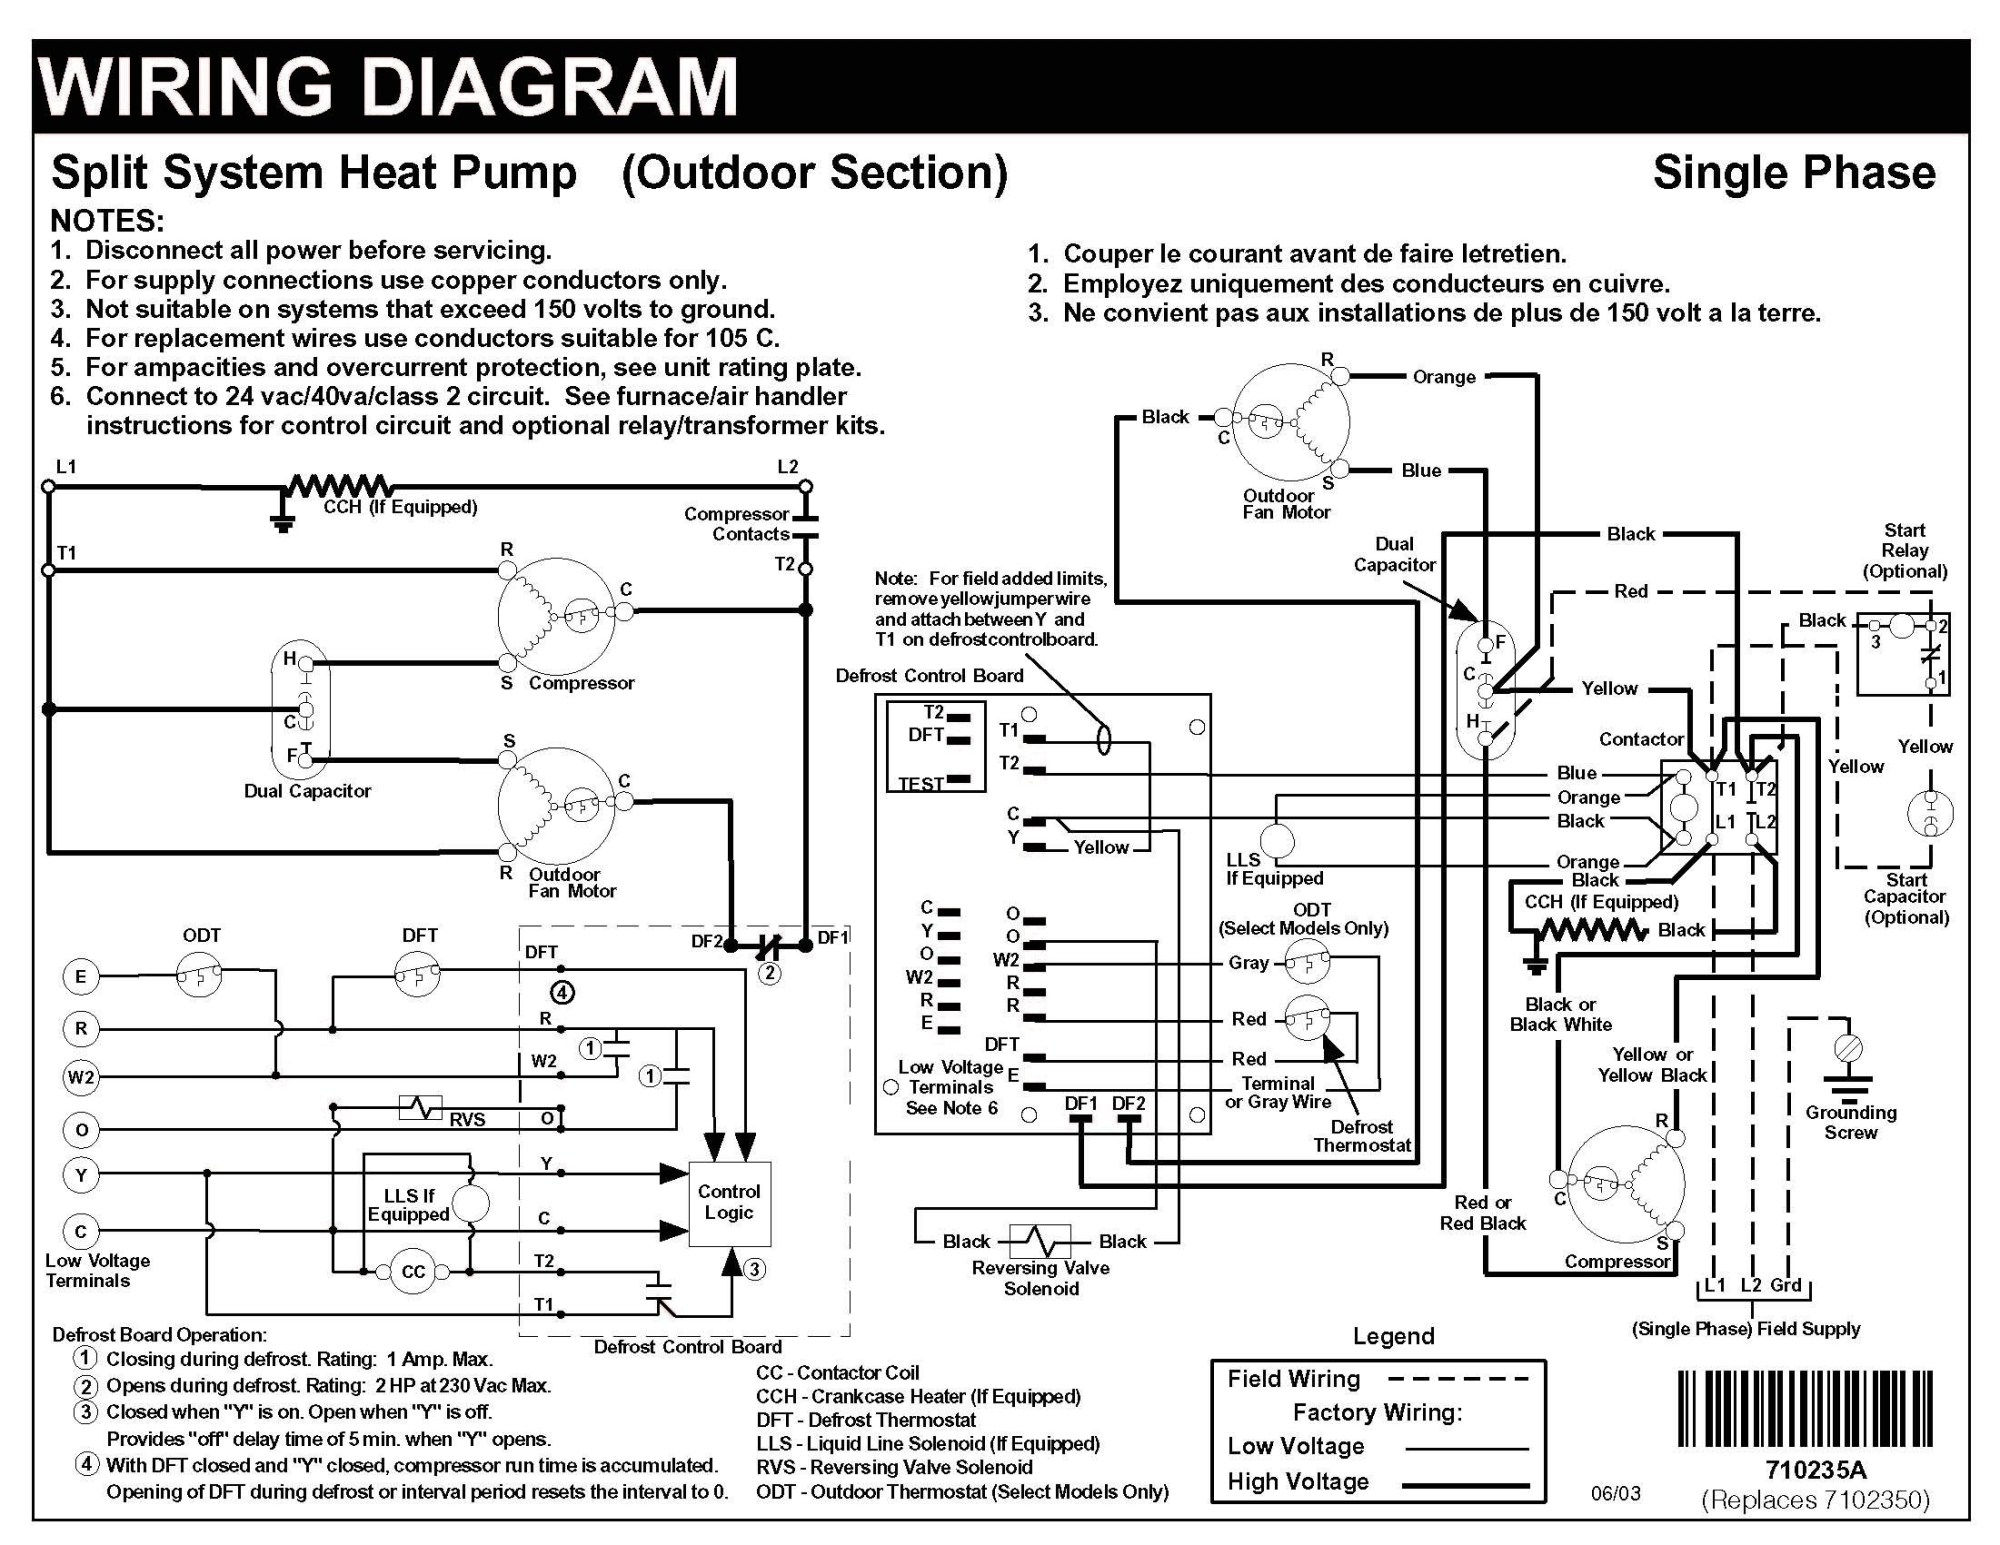 hight resolution of heil heat pump wiring diagram heil ac wiring diagram new inspirational trane heat pump wiring